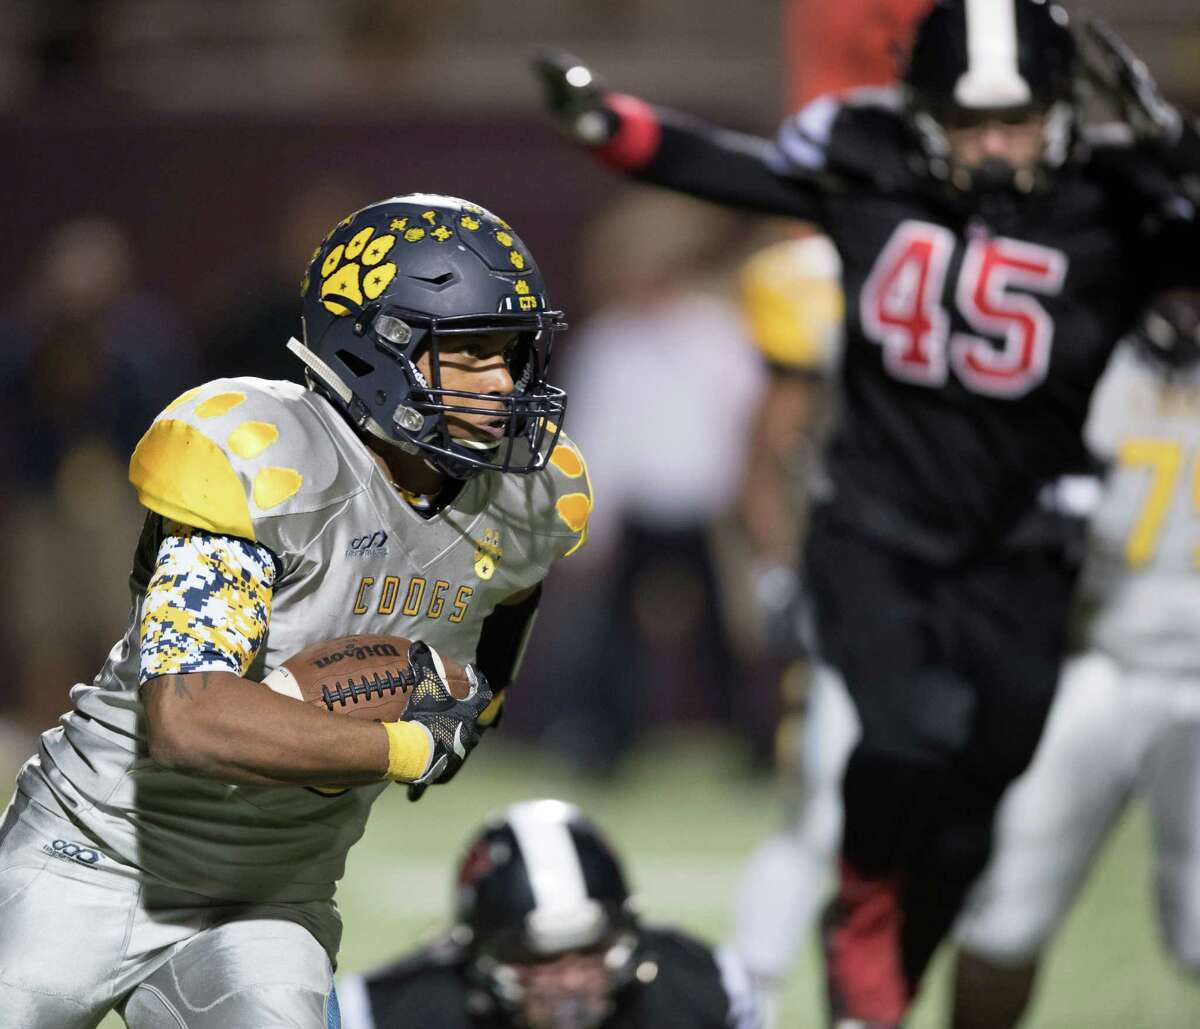 De'Marco Guidry (3) of the La Marque Cougars runs around the right end in the first half against the Coldspring Trojans in a high school football Class 3A Division 1 Bi-District Playoff Game on Thursday, November 10, 2016 at Abshier Stadium in Deer Park Texas.